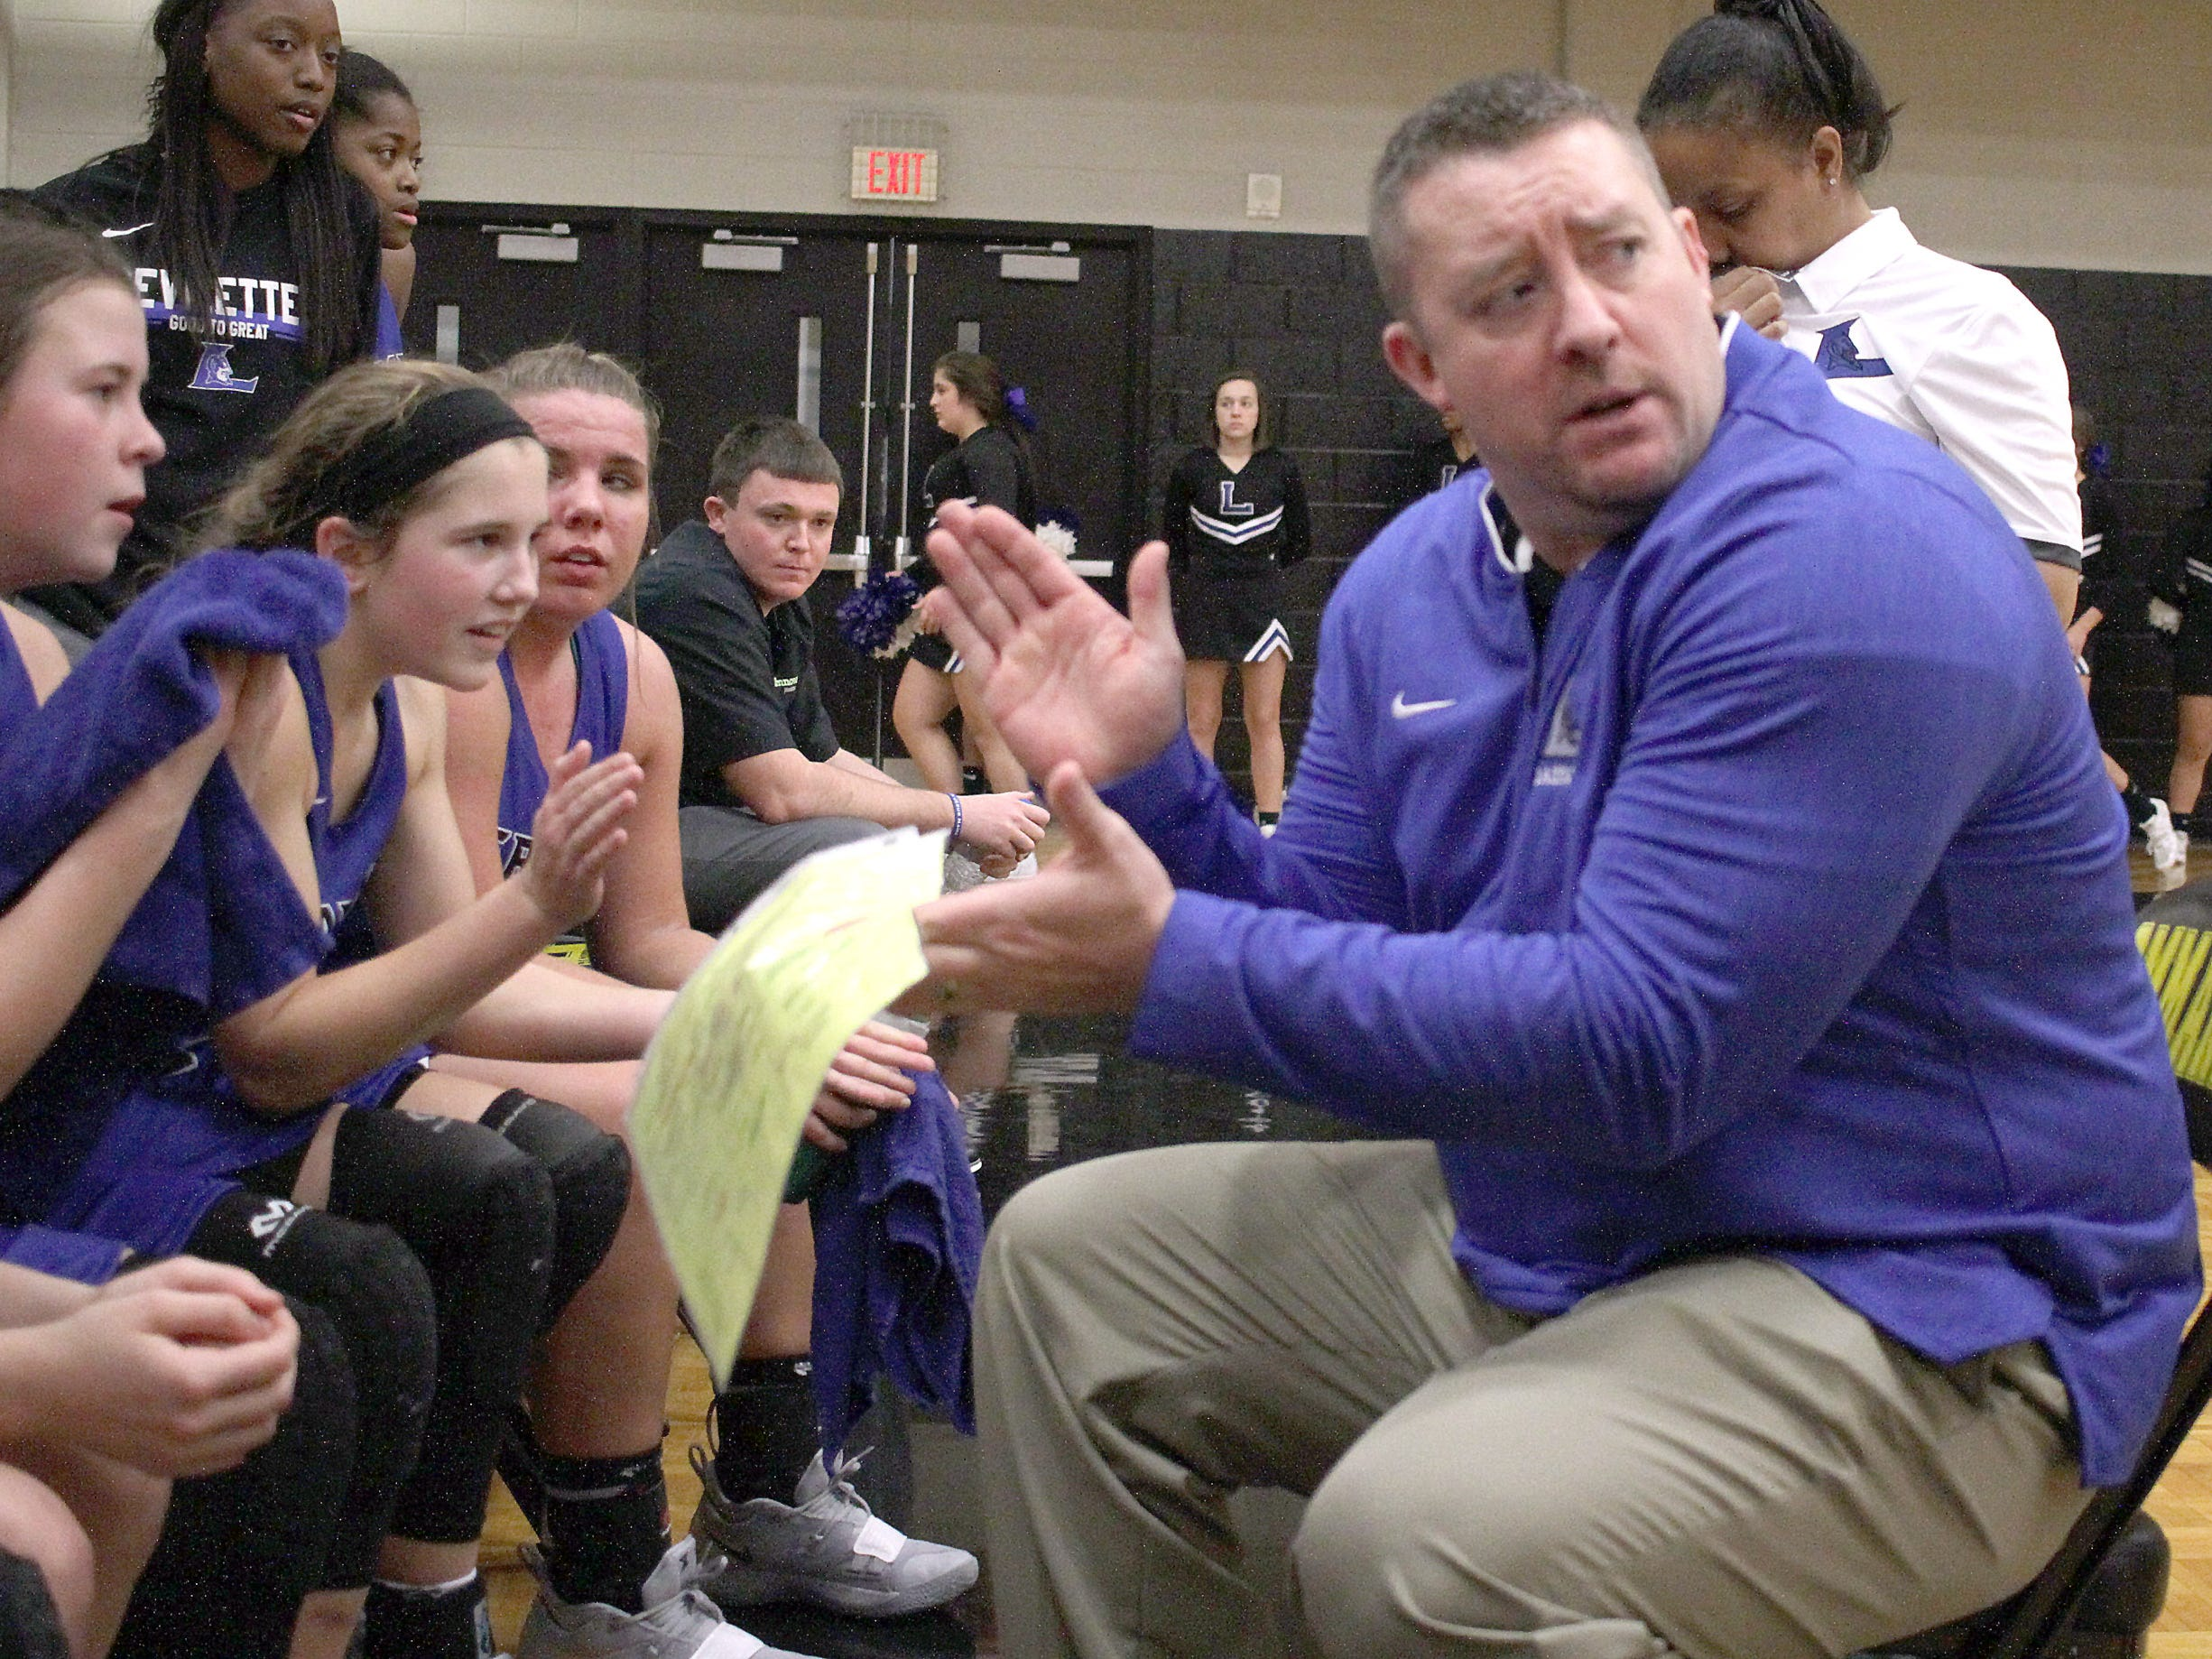 Lebanon coach Corry Barrett talks with his team as they visit Hendersonville on Tuesday, December 11, 2018.